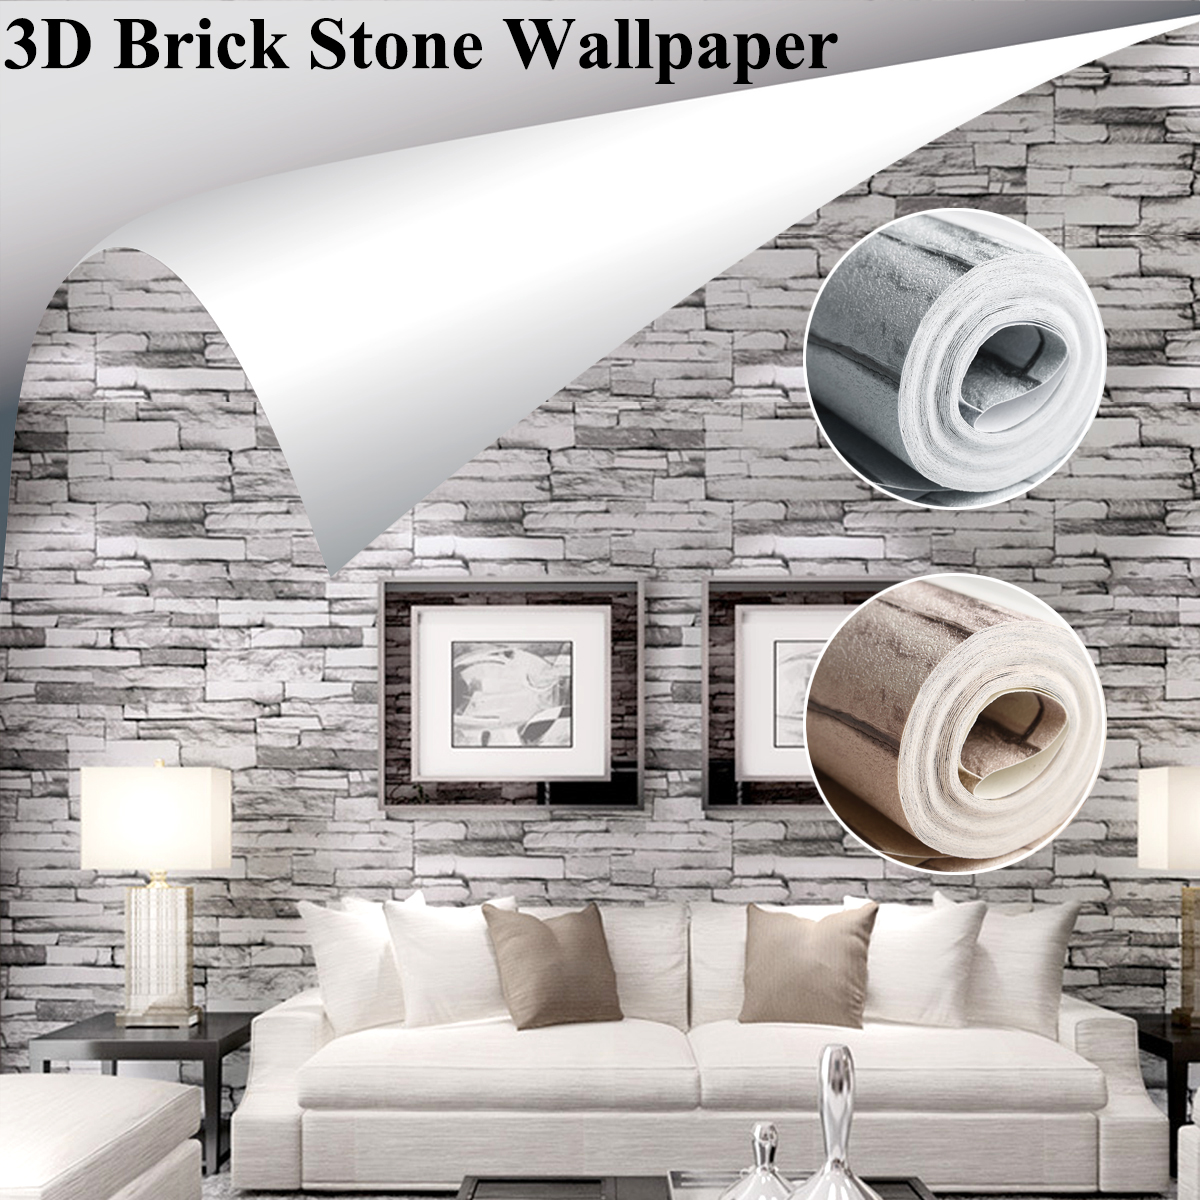 Modern 3D Brick Stone Wallpaper Vintage Brick Pattern For Living Room Wall Sticker Decor Waterproof TV Sofa Background wallpapers youman 3d brick wallpaper wall coverings brick wallpaper bedroom 3d wall vinyl desktop backgrounds home decor art